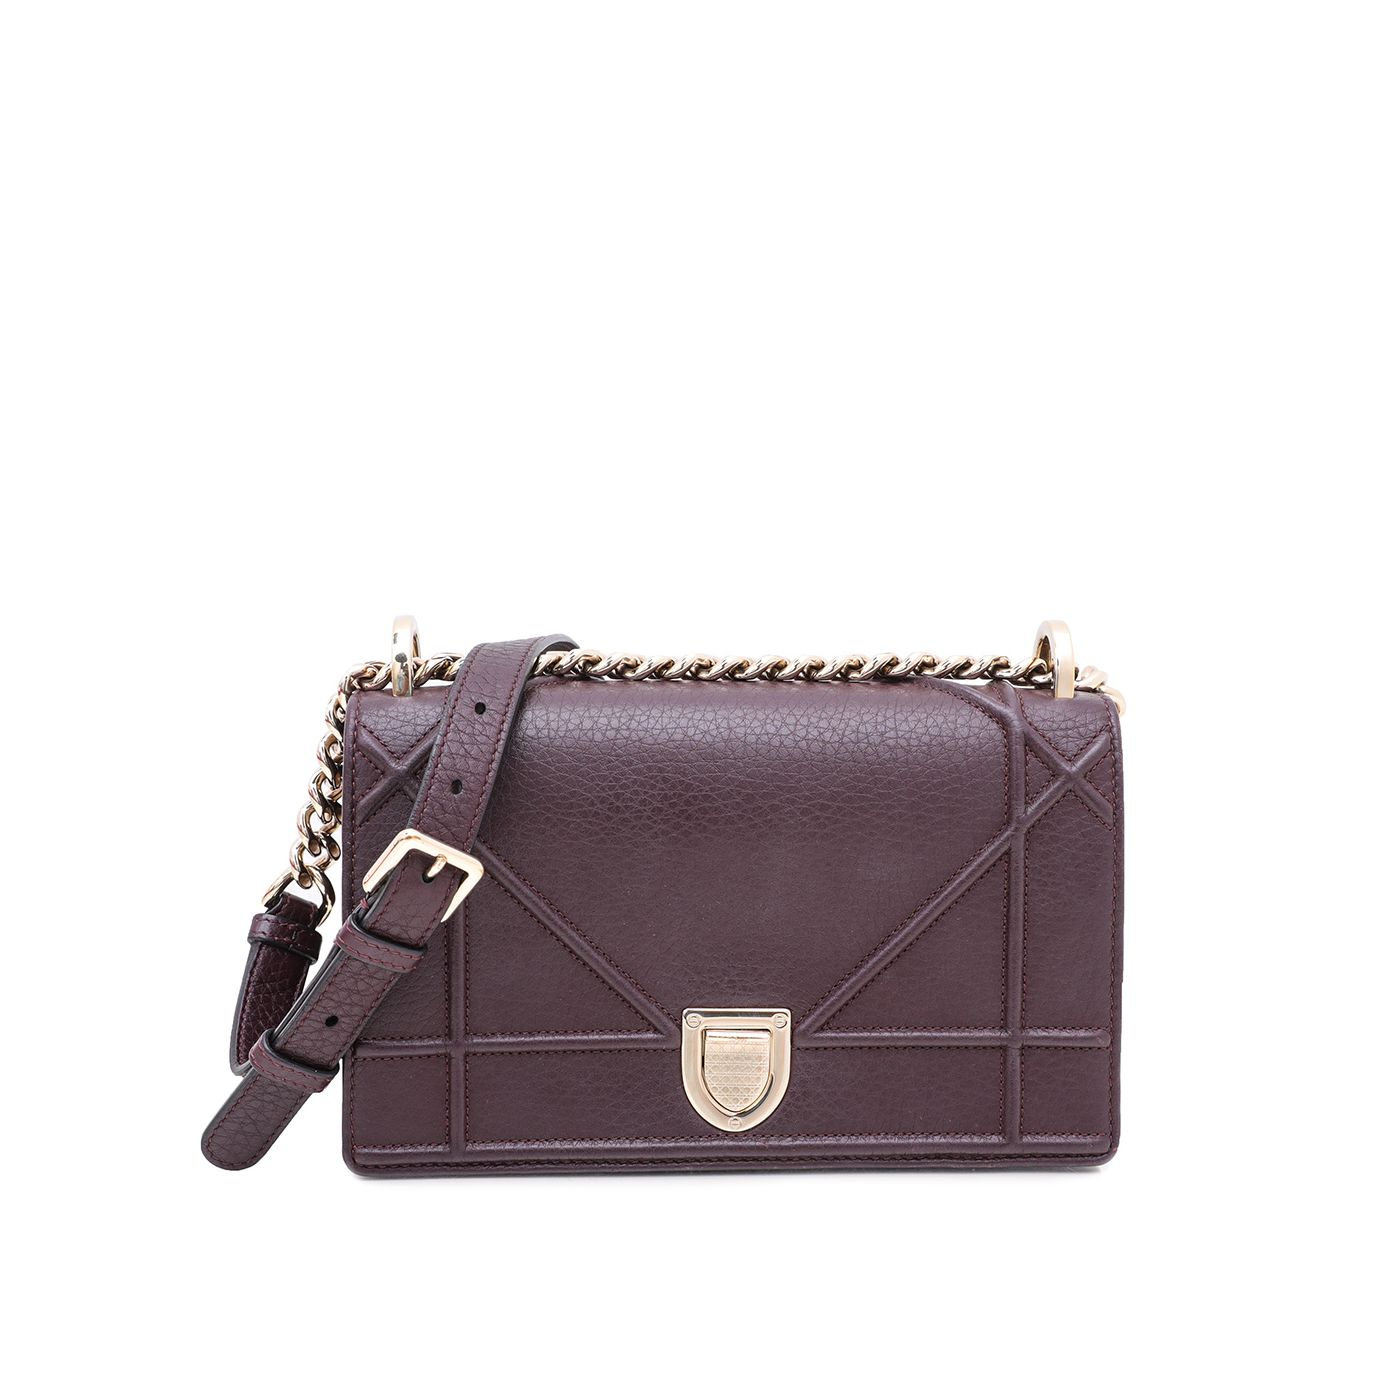 Christian Dior Burgundy Diorama Small Bag